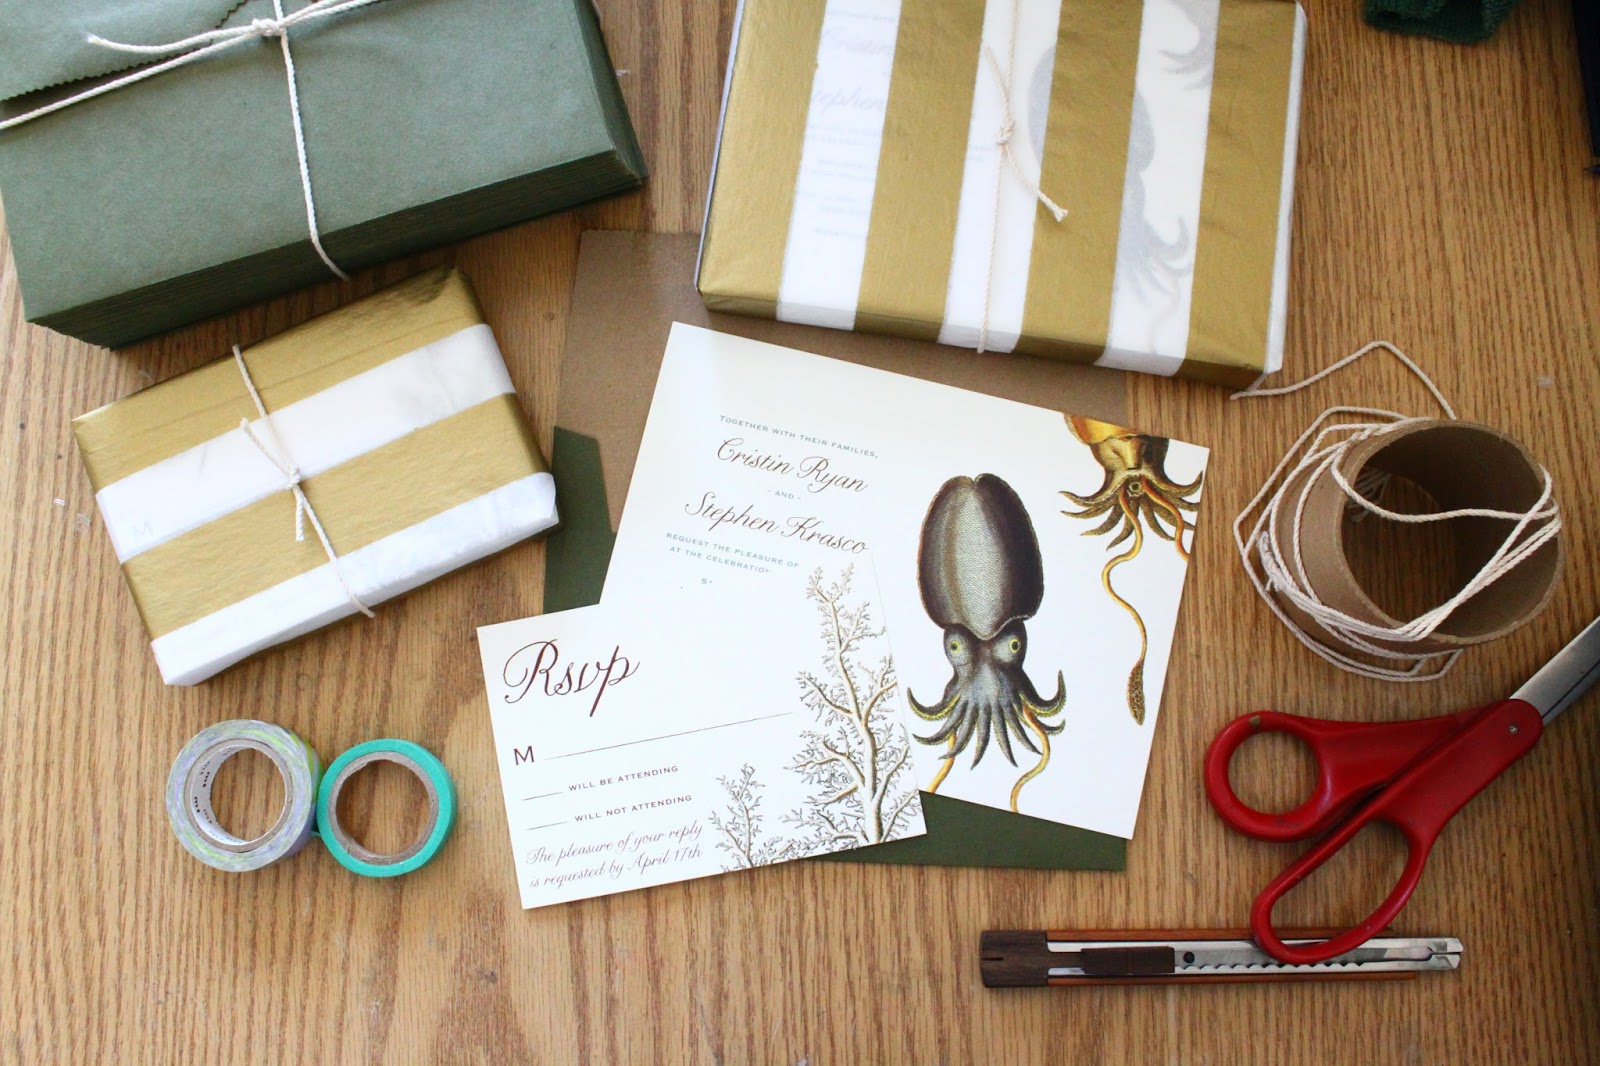 Beautiful Marine Life Wedding Invitations Featuring Green Cuttlefish from Concertina Press